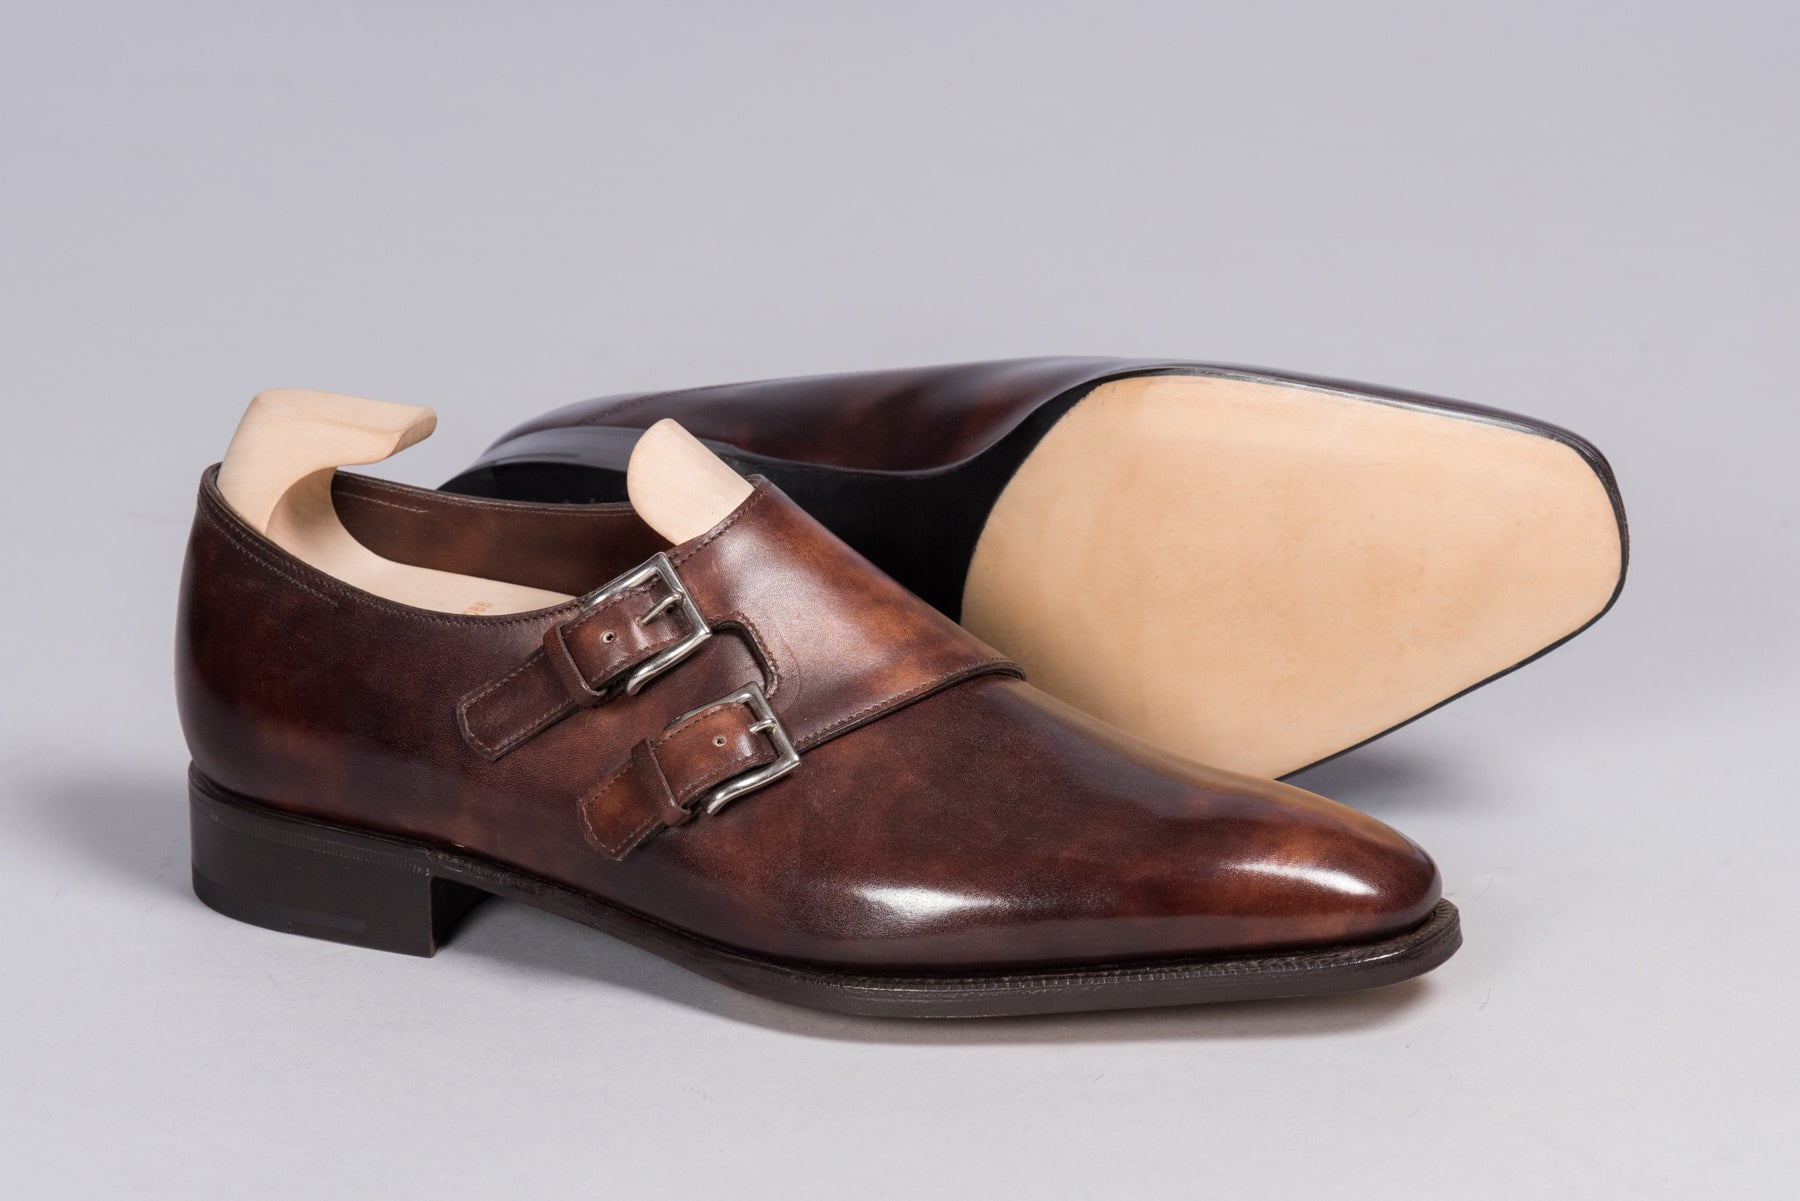 John Lobb Prestige Chapel Dark Brown Museum Calf - Stock Service